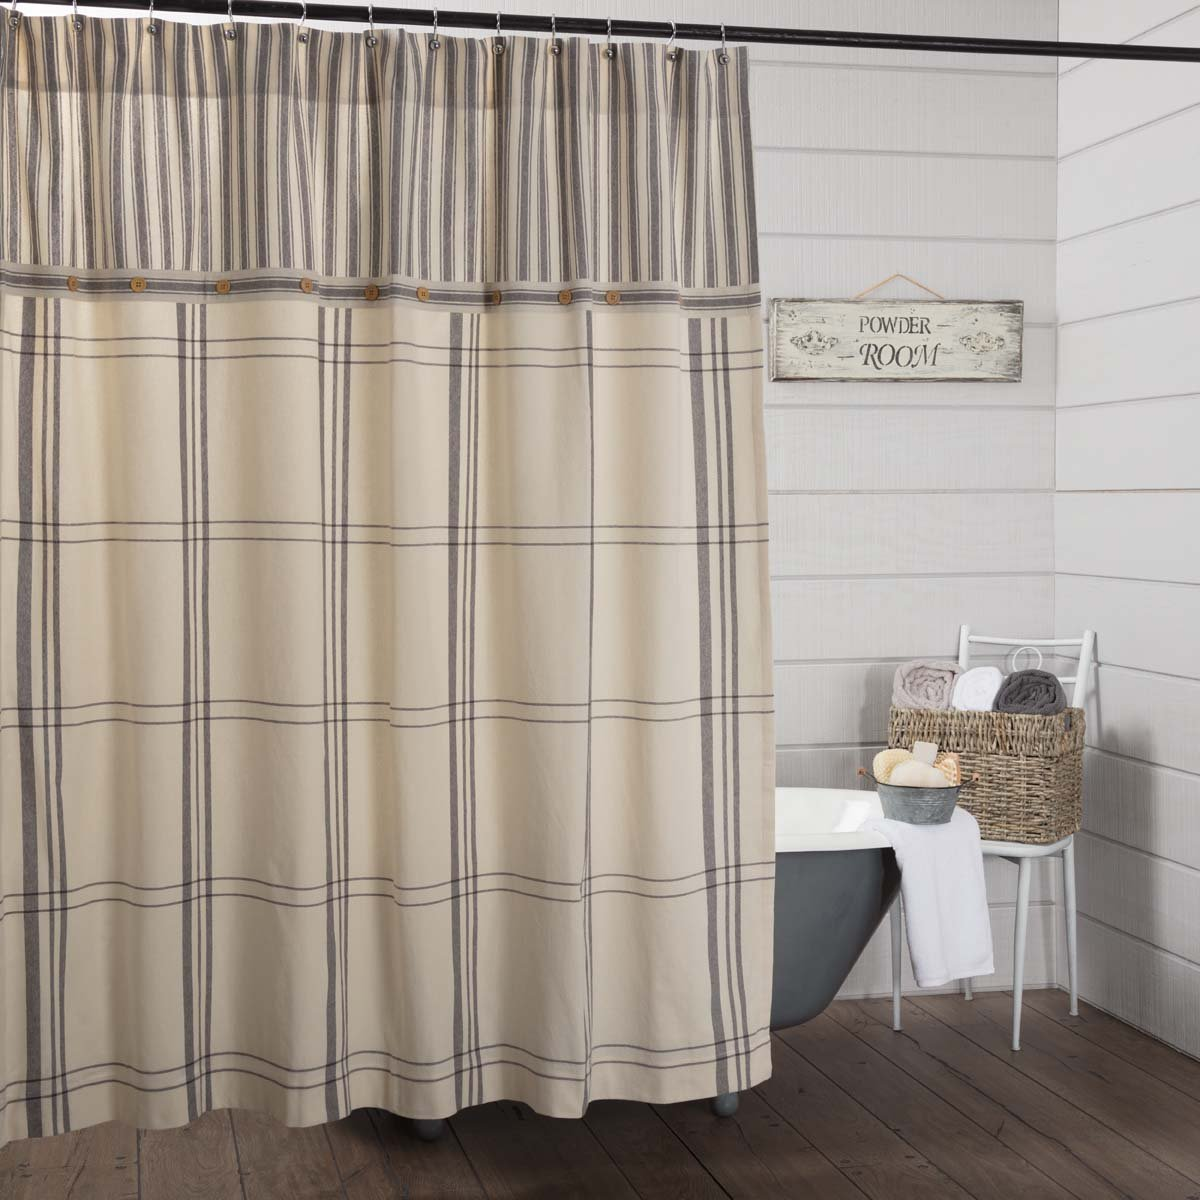 Piper Classics Market Place Shower Curtain, 72'' x 72'', Ticking Stripe w/Grey & Cream Plaid by Piper Classics (Image #1)